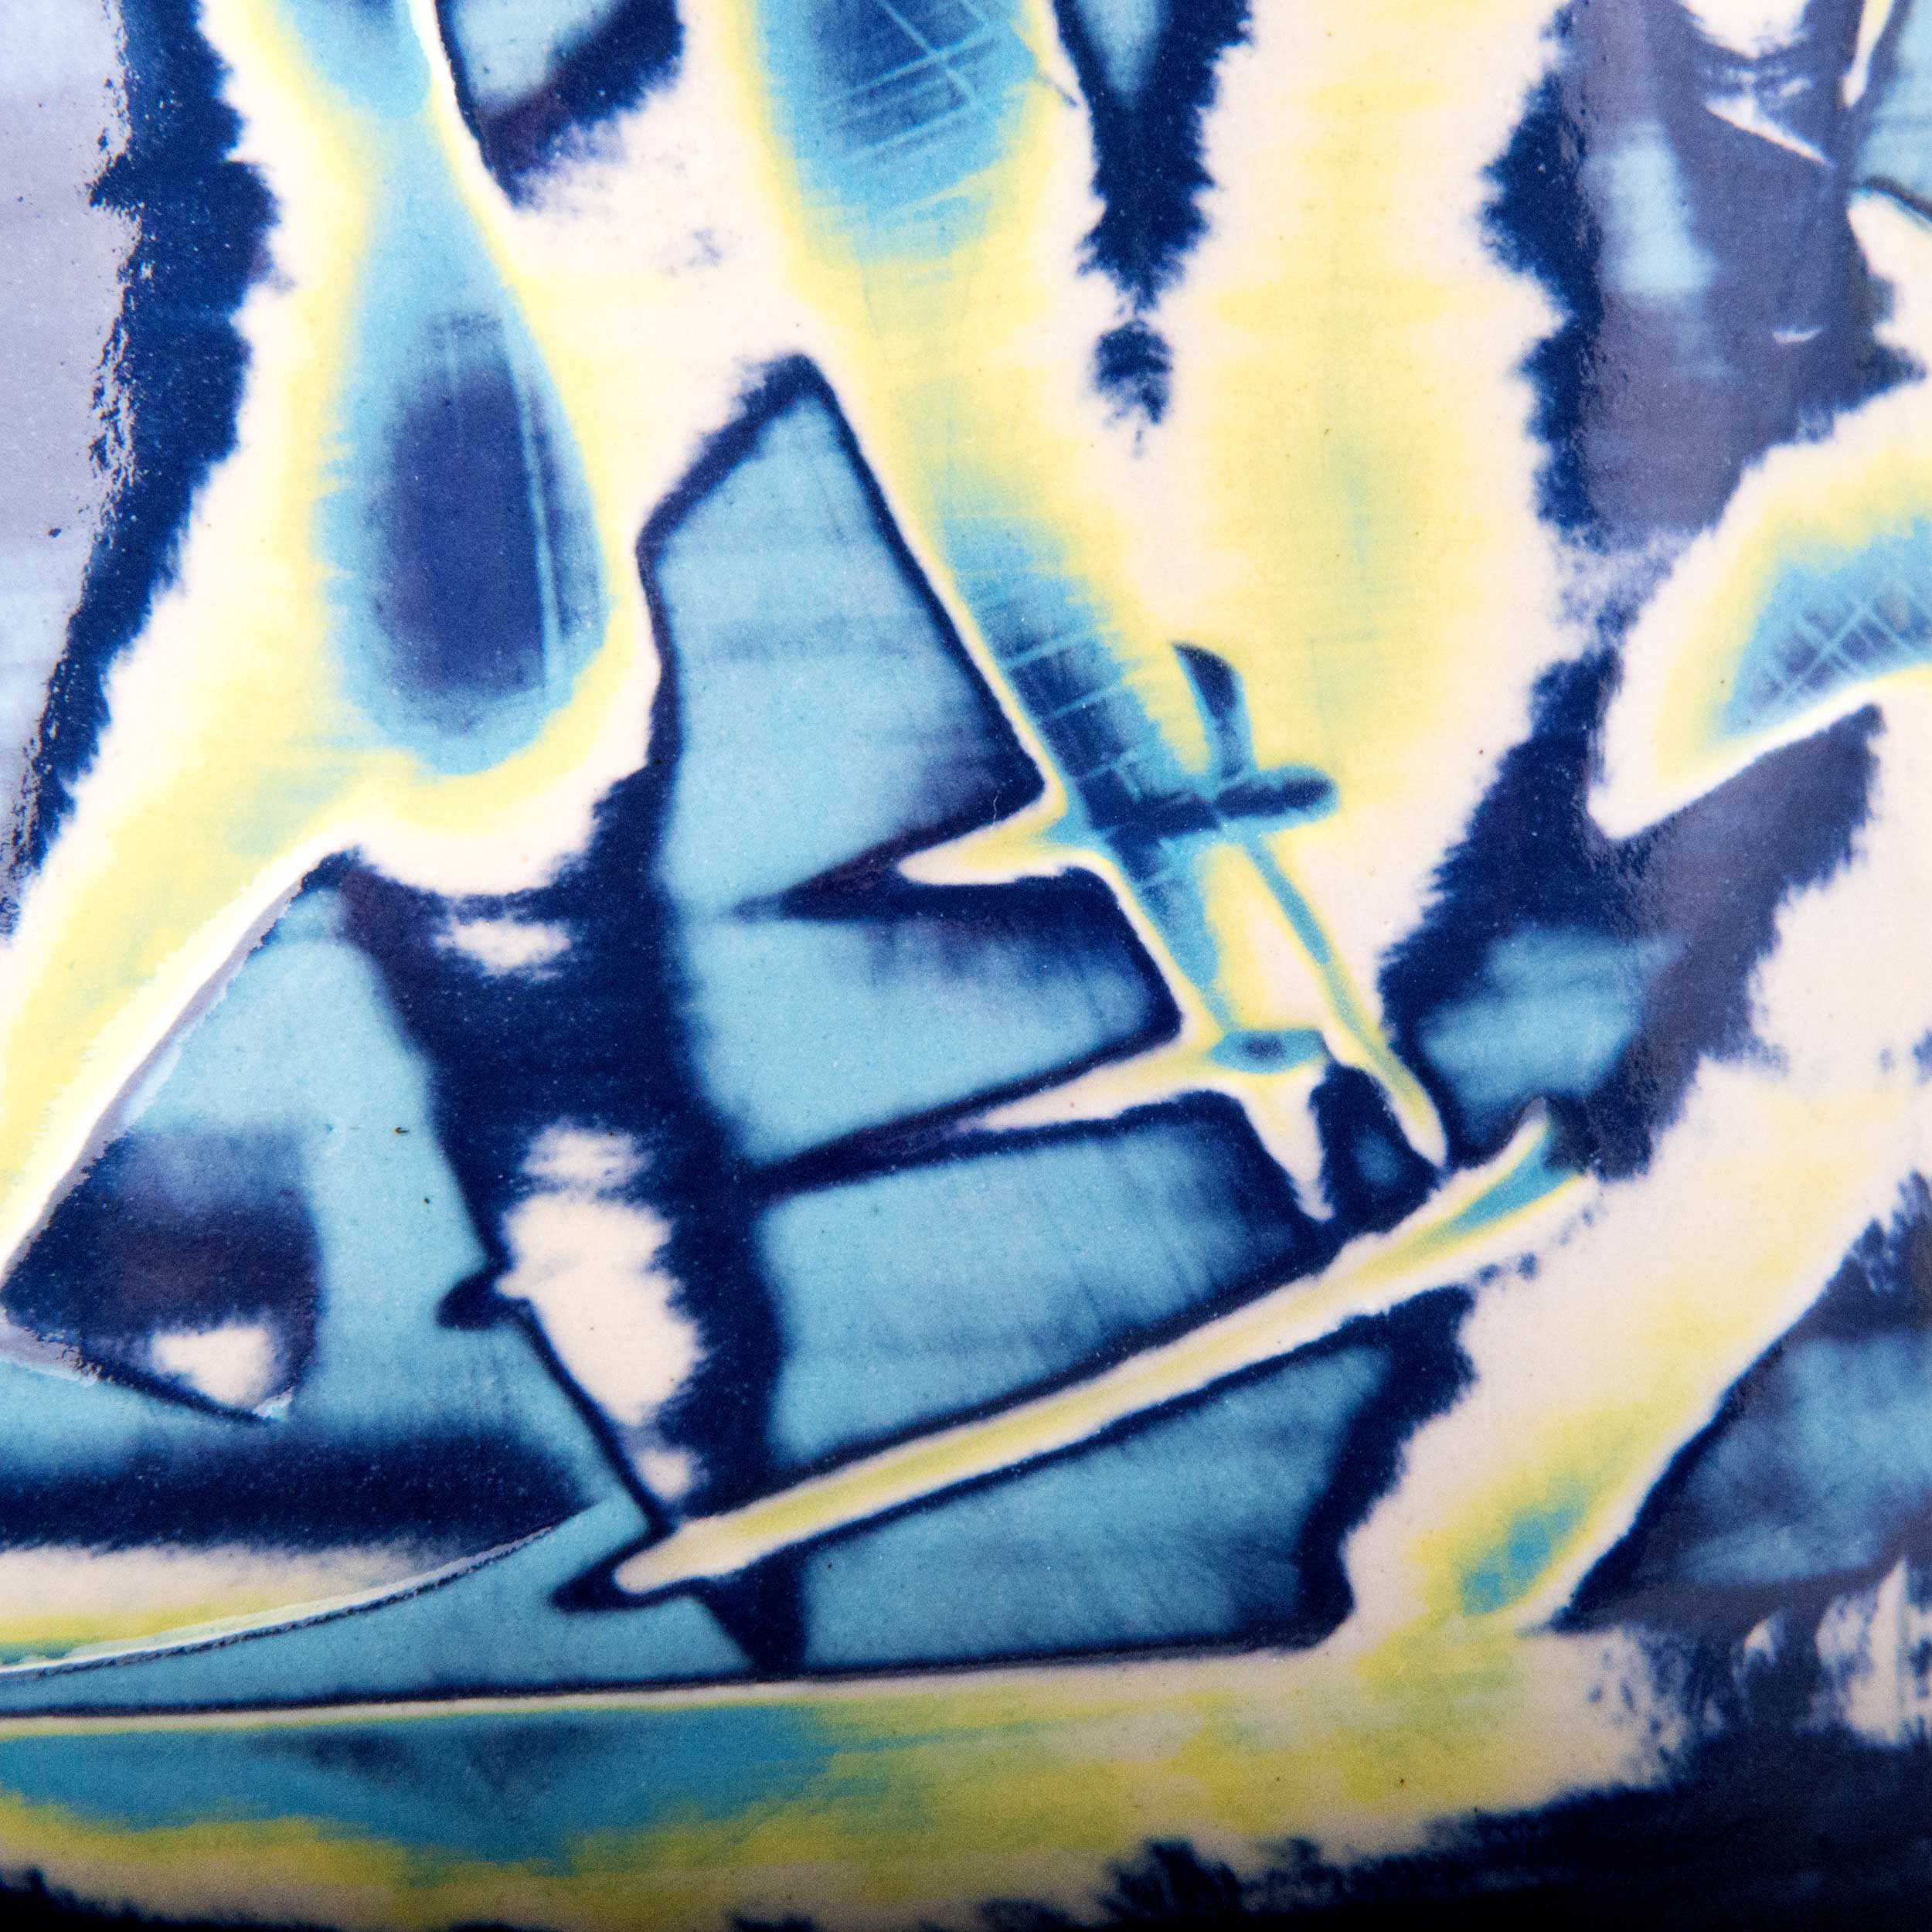 Turquoise Blue Sgraffito Ceramic Pattern by Rowena Gilbert